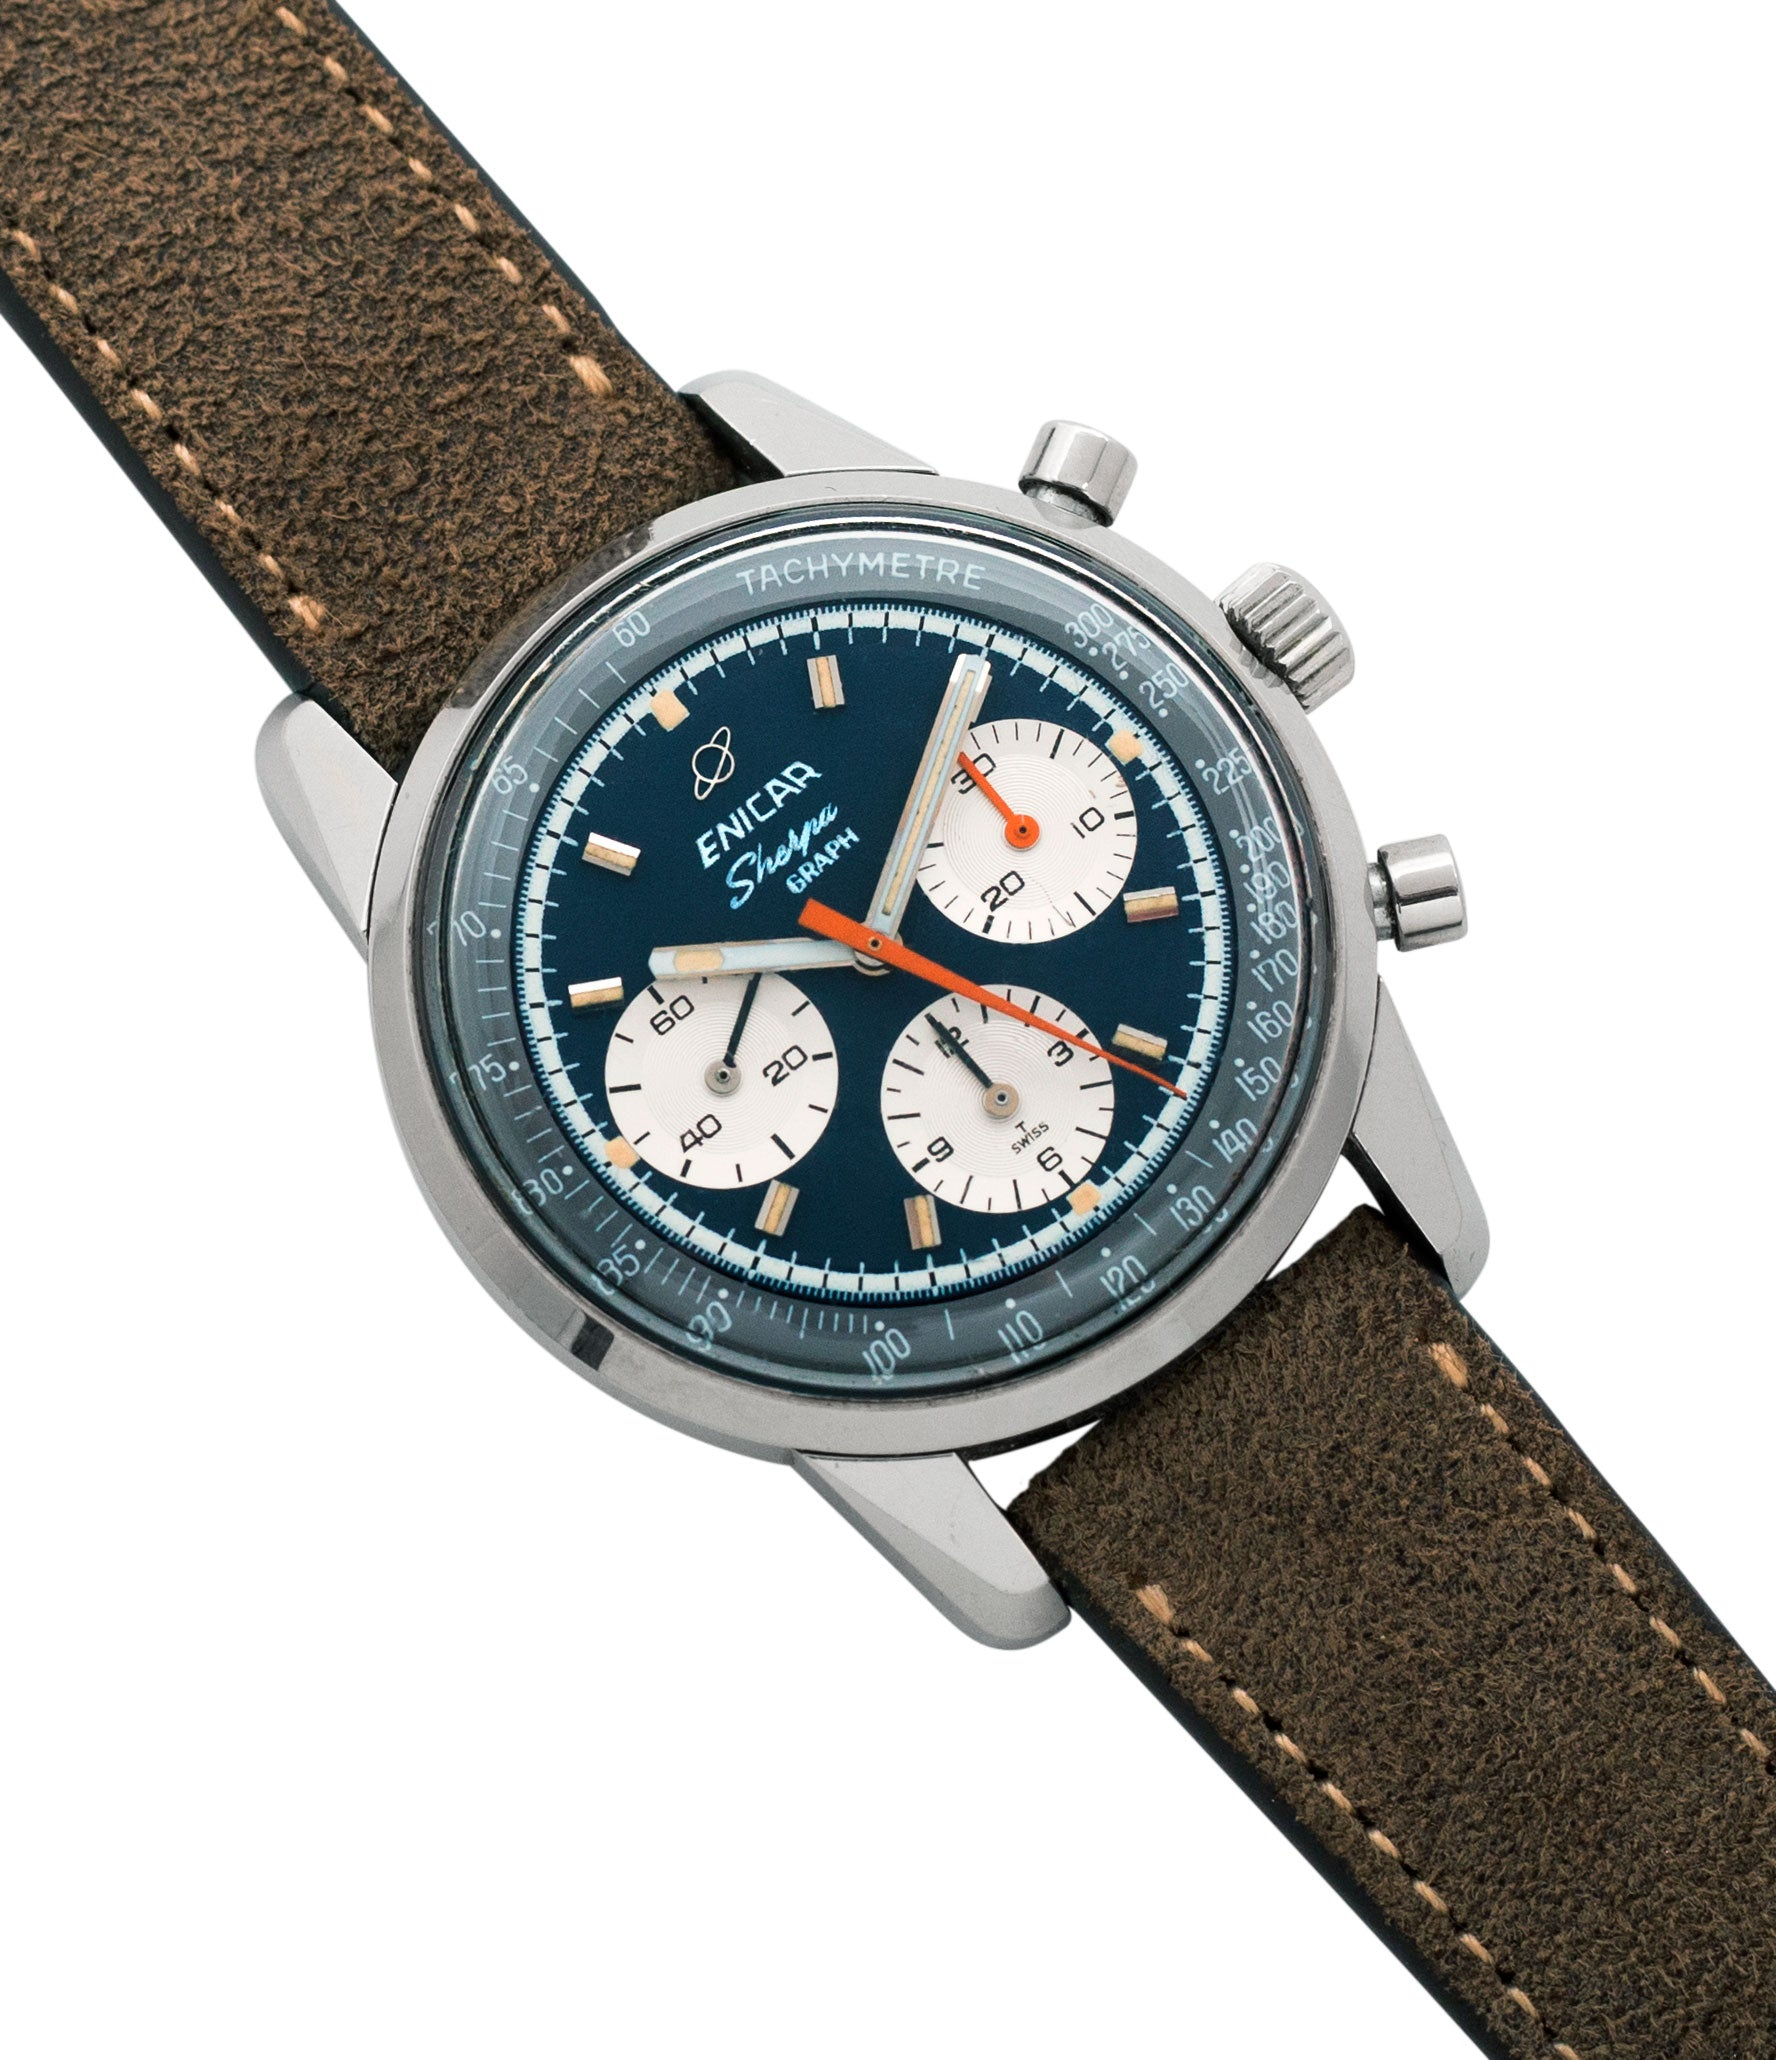 shop Enicar Sherpa Graph 300 Ref. 072-02-01 vintage steel chronograph sport racing watch for sale online at A Collected Man London UK vintage watch specialist